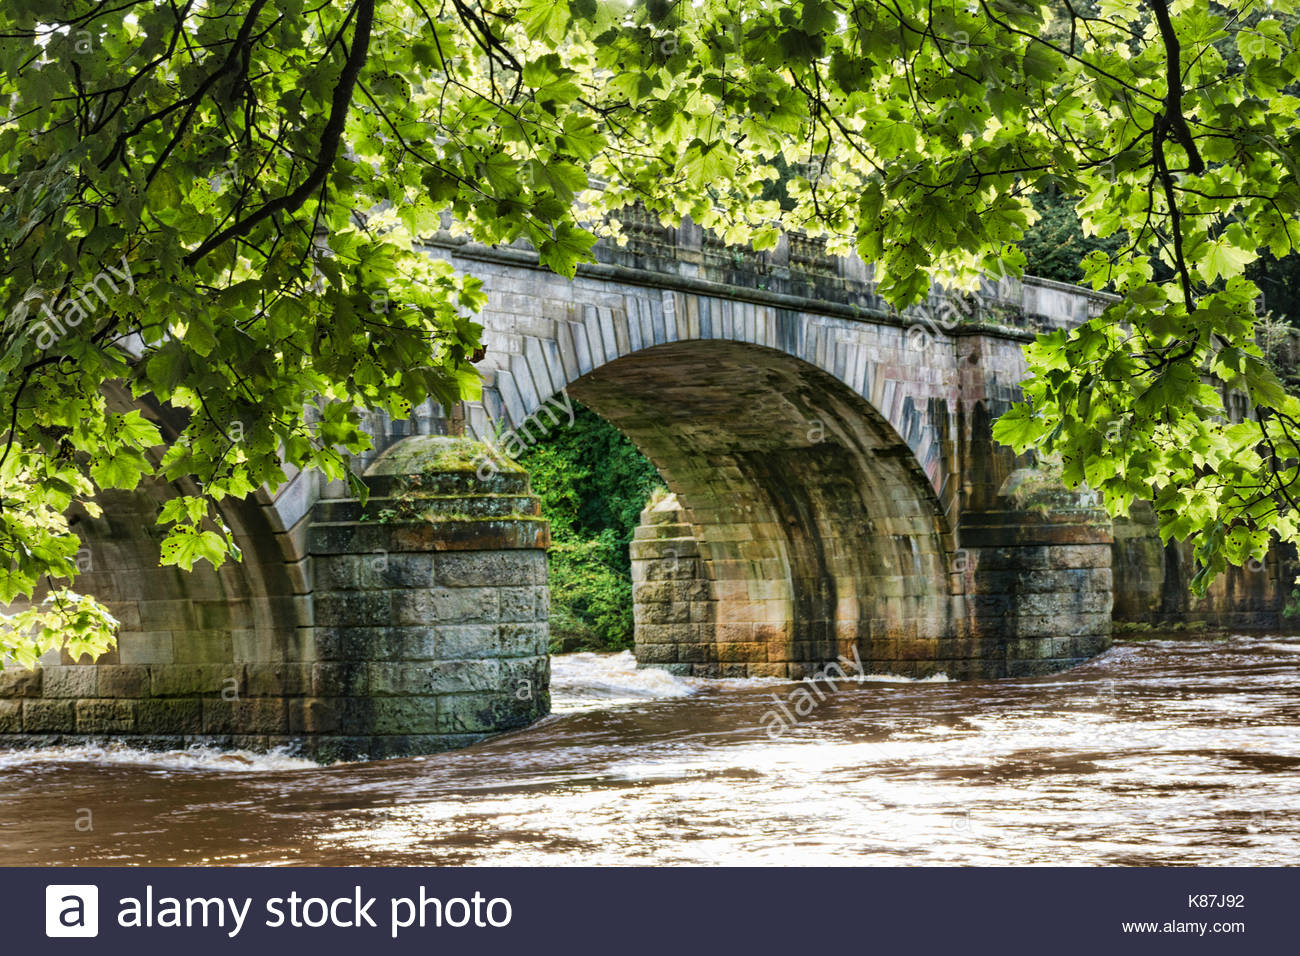 Central arch of the bridge over the River Lune at the Crook of Lune near Lancaster, UK - Stock Image